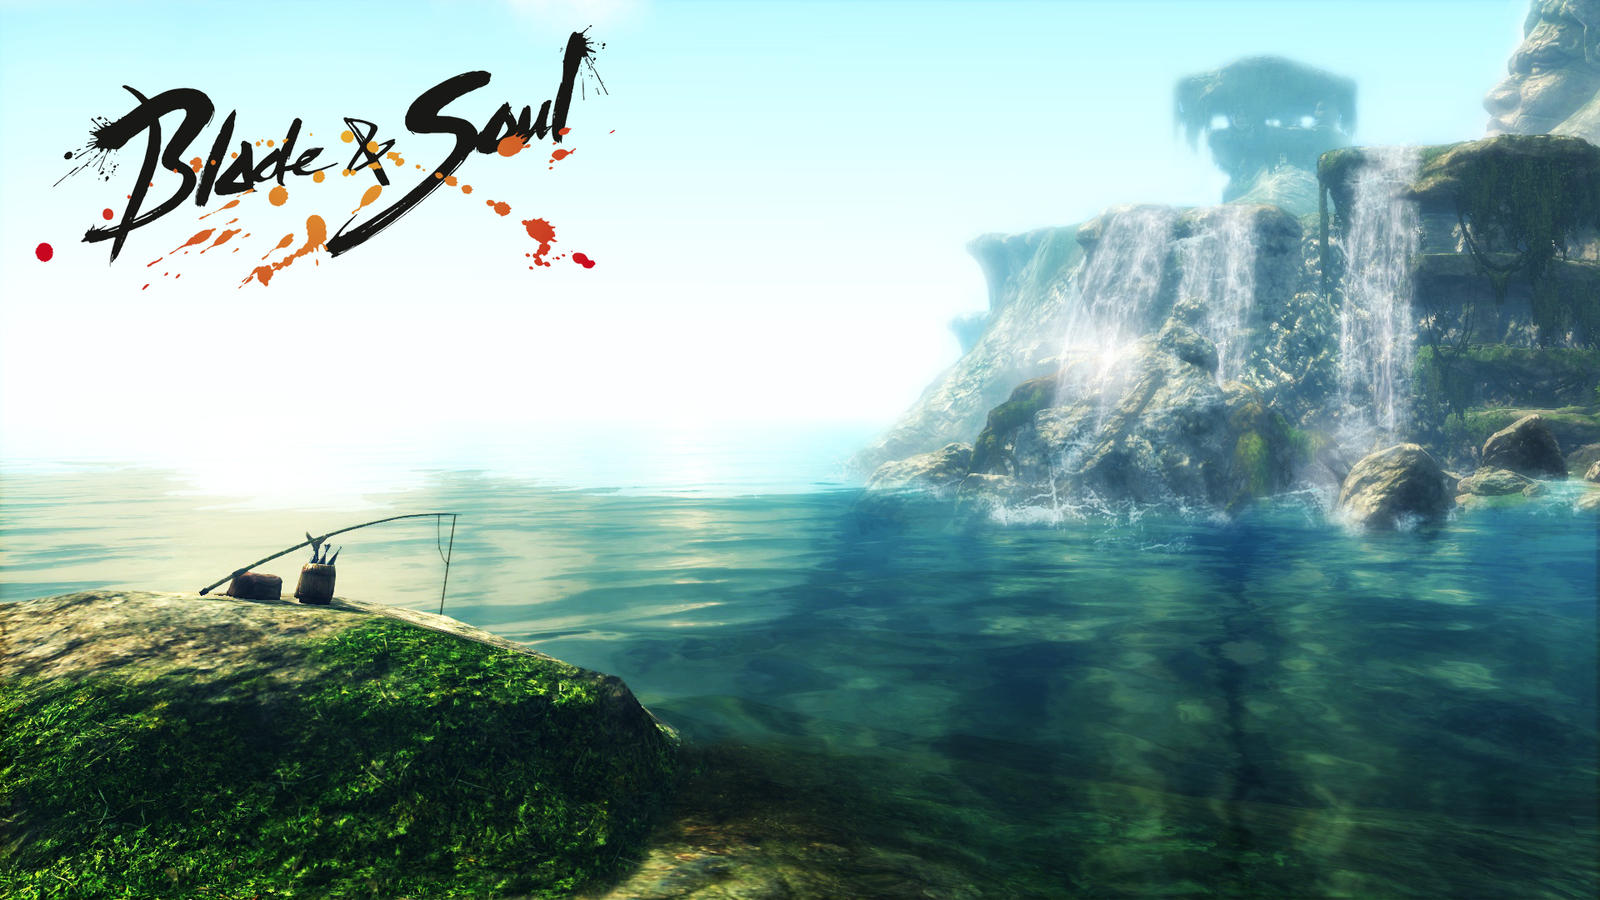 Blade And Soul Wallpaper 1 1920x1080 By Livewirehd On Deviantart